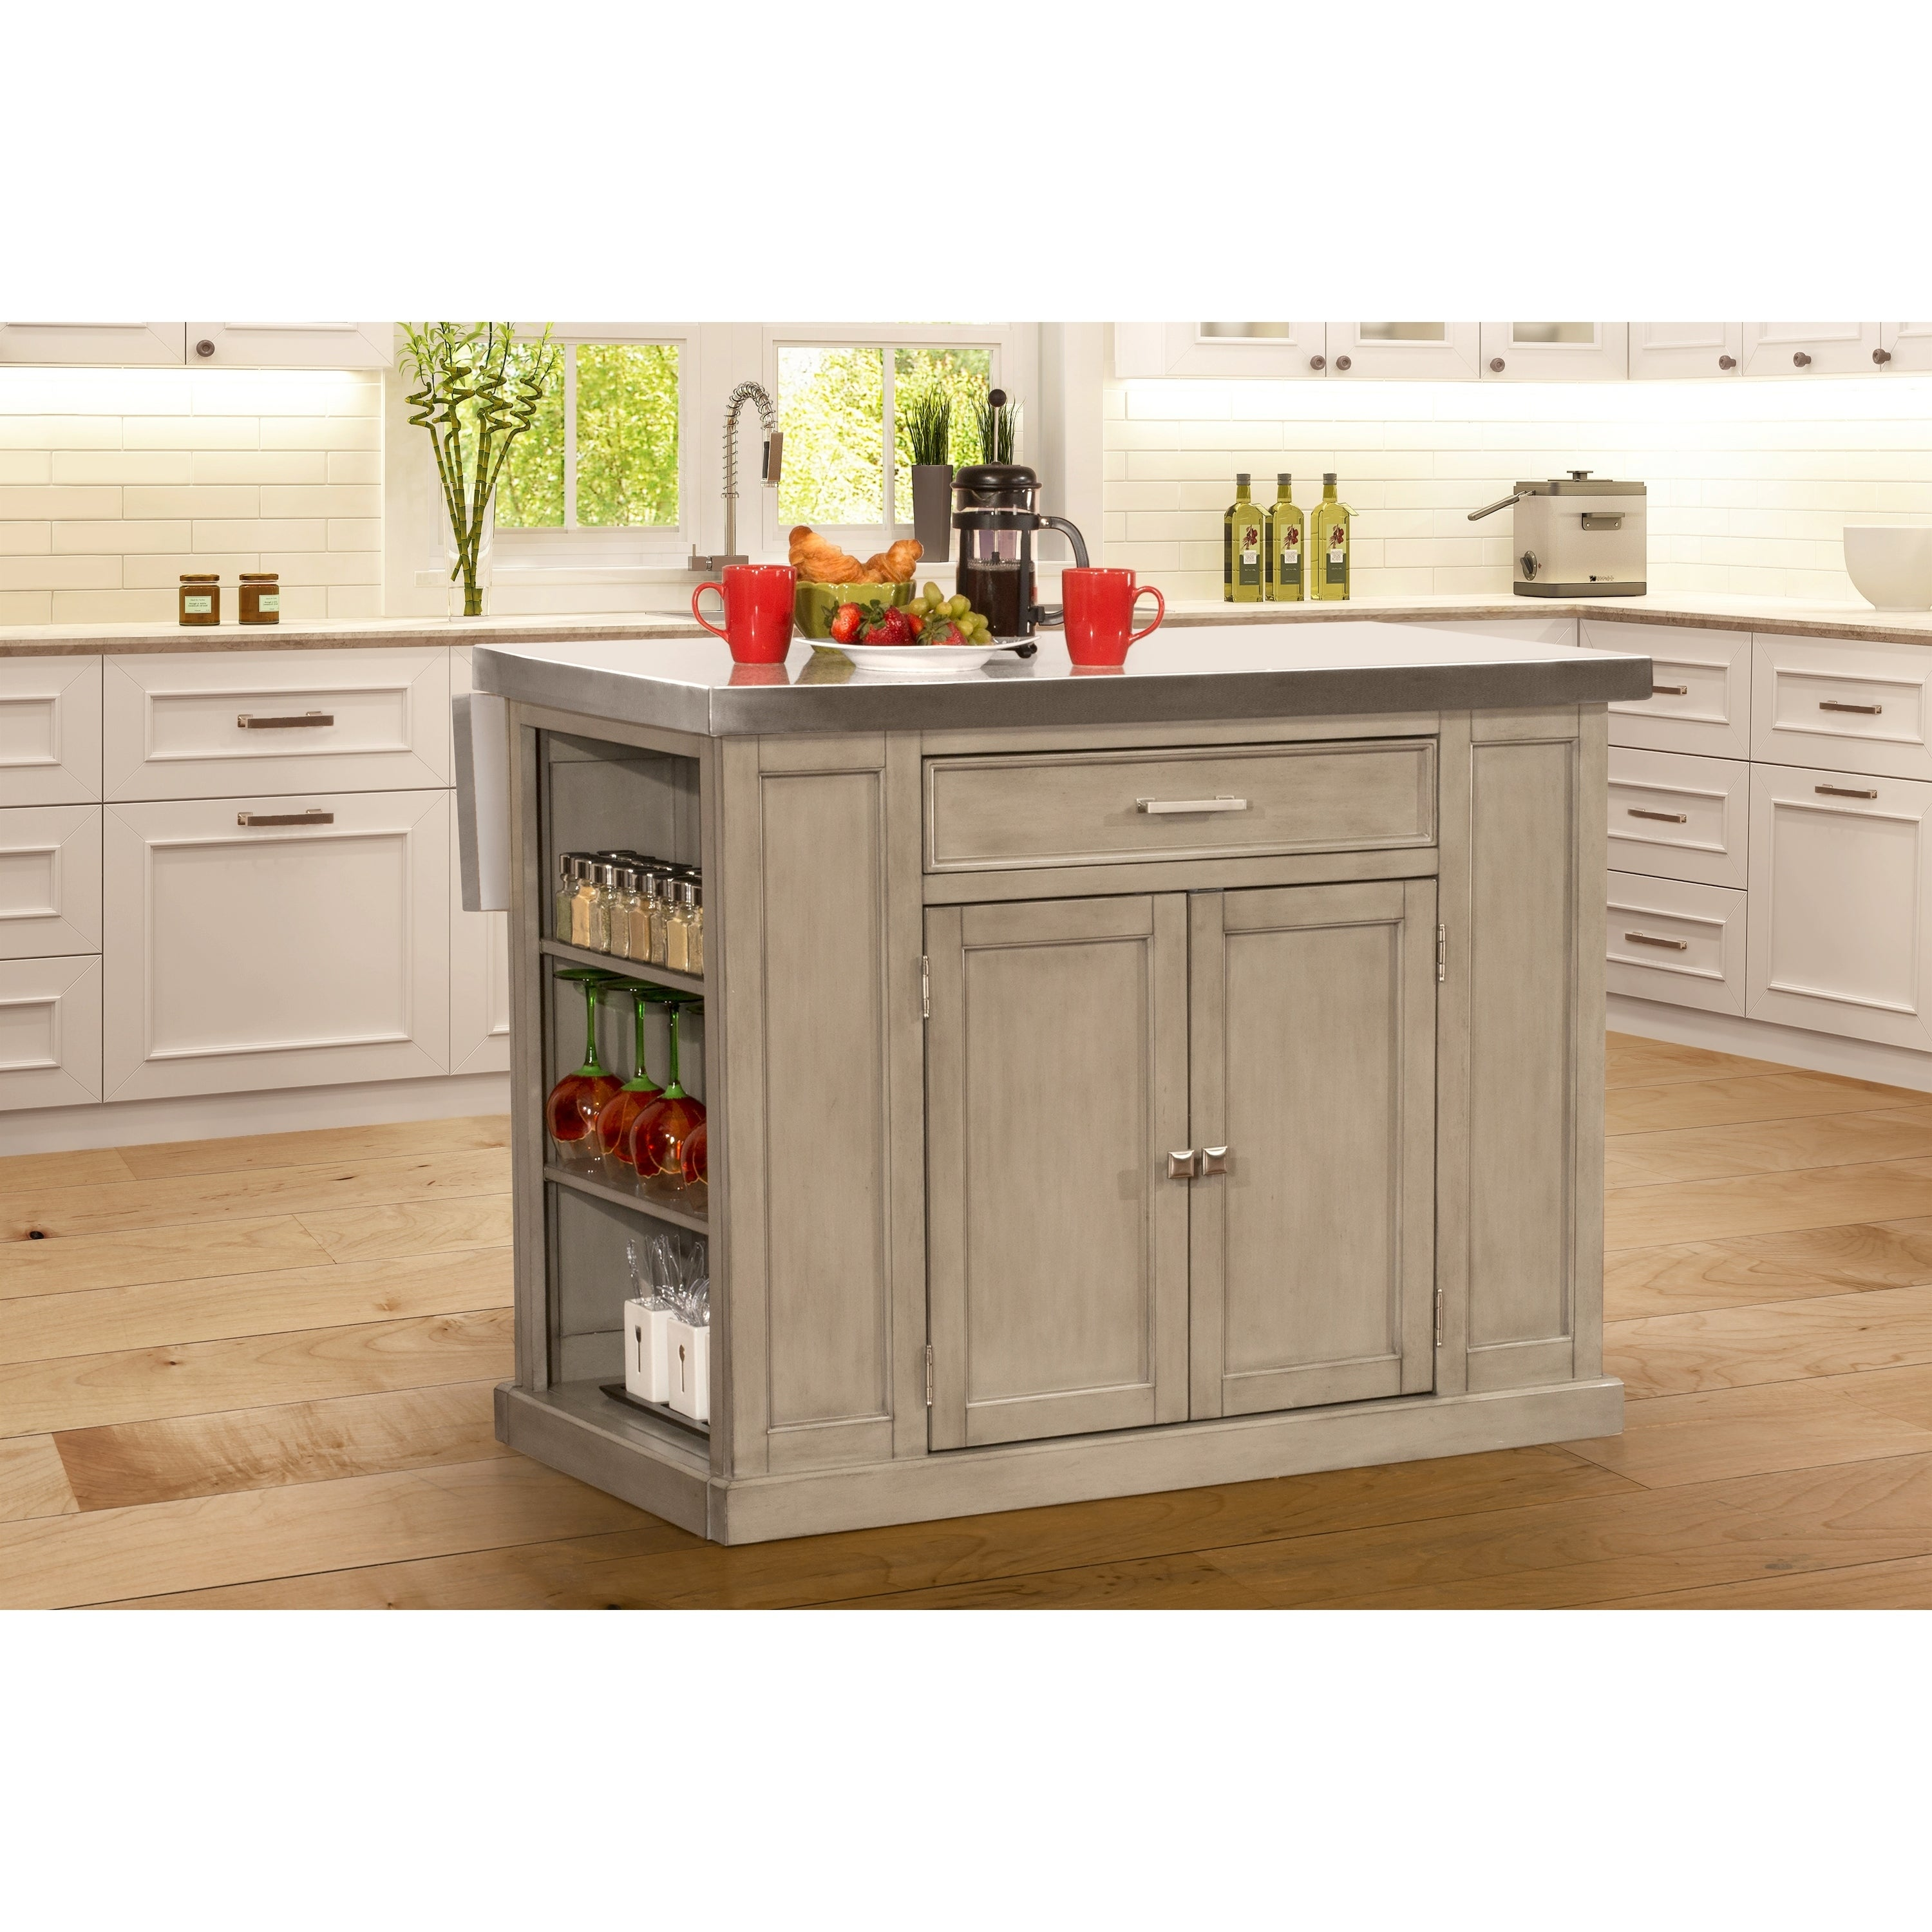 Flemington Kitchen Island in Gray with Stainless Steel Top by Hillsdale  Furniture